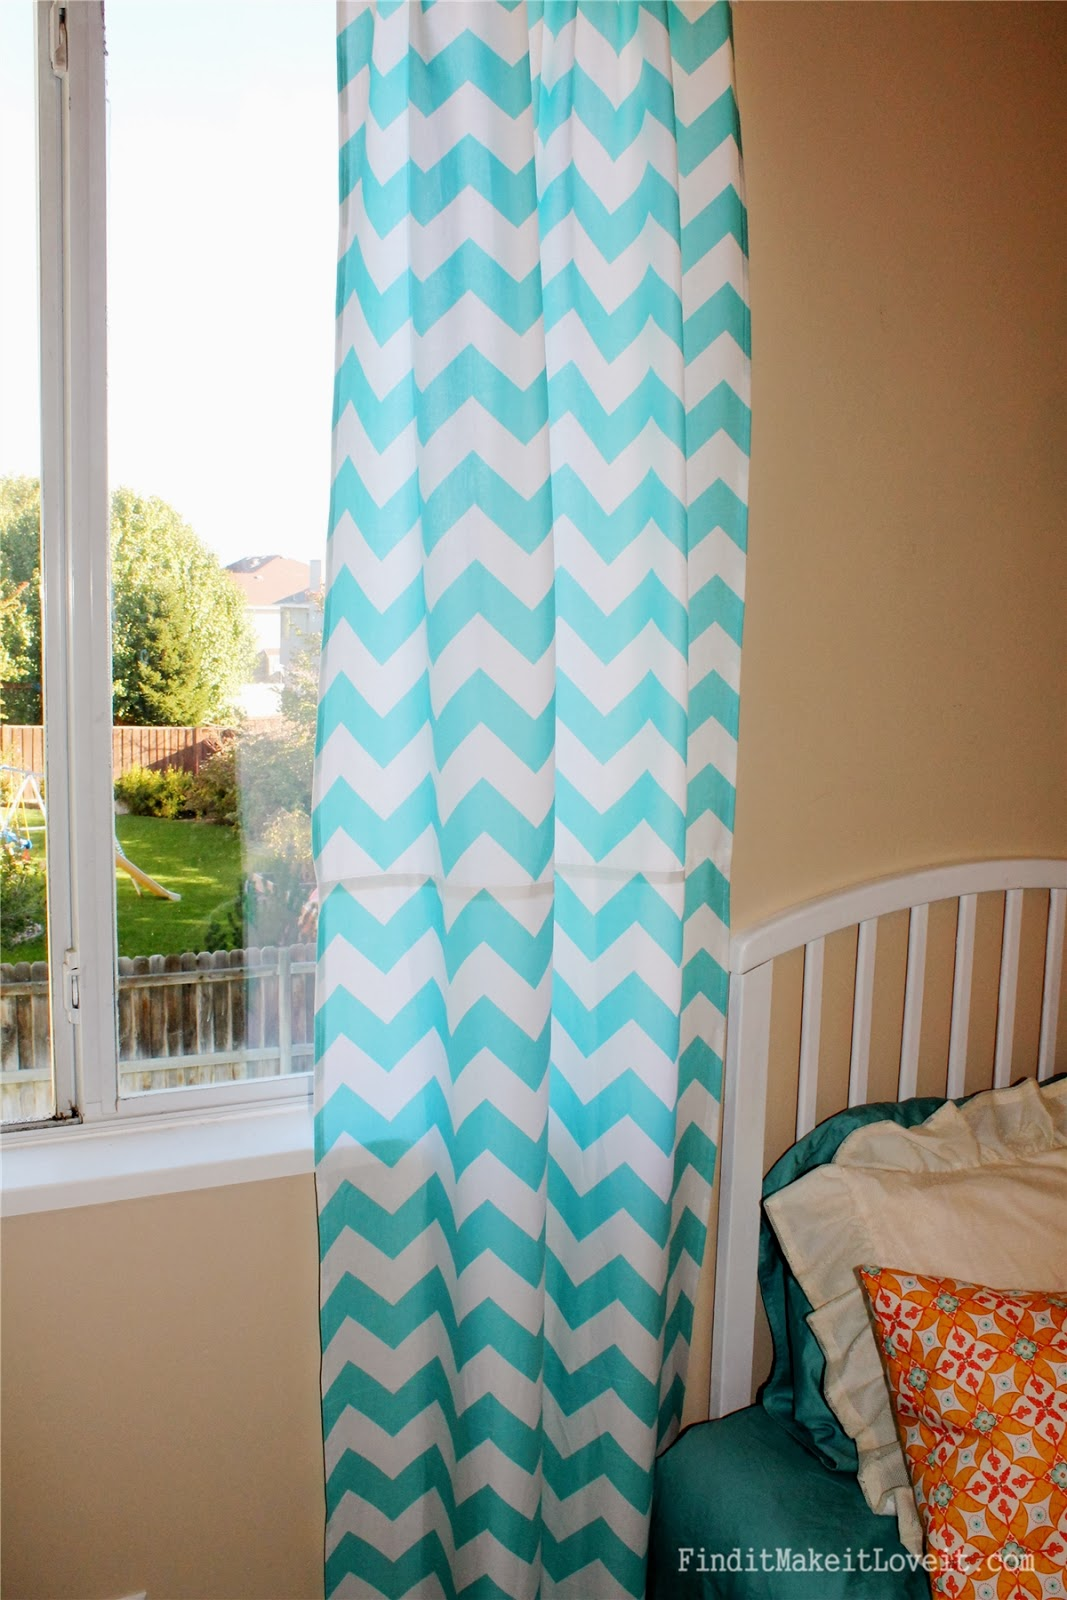 Easy Chevron Curtains  Find It, Make It, Love It. Ceiling Images Living Room. Ceiling Ideas For Dining Room. Wall Shelves Dining Room. Living Room Floor Plan Design. Western Living Rooms. Living Room Display Cabinets. Best Prices On Living Room Furniture. Designer Dining Room Chairs